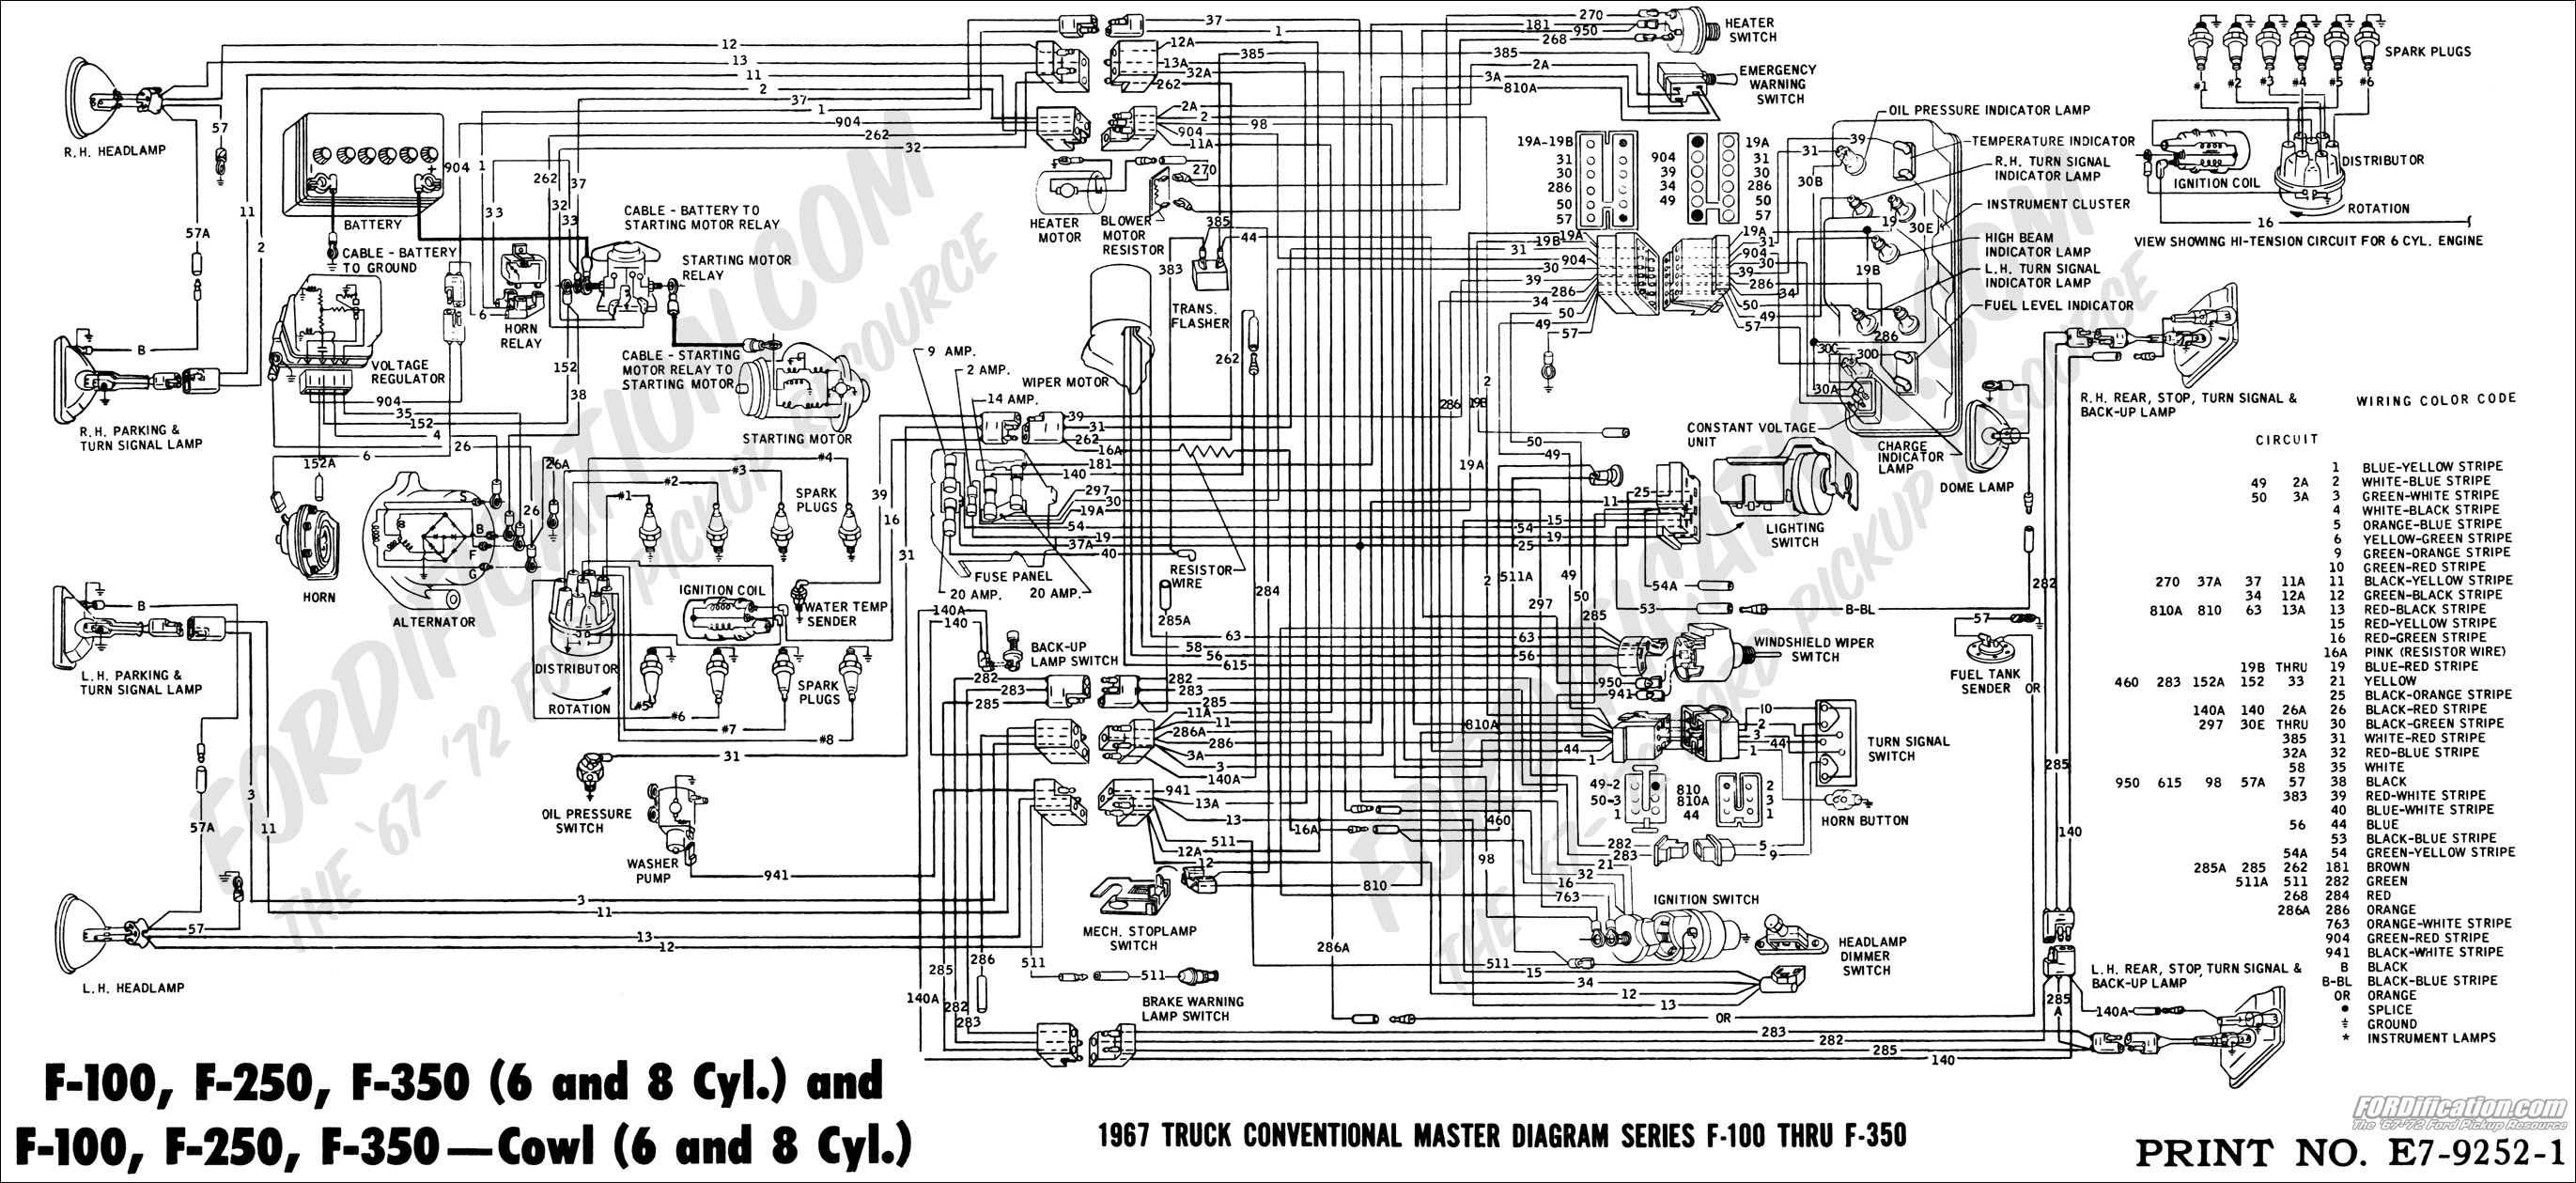 2006 Ford F150 Wiring Diagrams - Wiring Diagram Yer  F Horn Wiring Diagram on frontier wiring diagram, g6 wiring diagram, fairmont wiring diagram, model wiring diagram, f150 cruise control not working, c-max wiring diagram, aspire wiring diagram, van wiring diagram, f100 wiring diagram, 2004 f-150 fx4 fuse diagram, yukon wiring diagram, 2012 f-150 wiring diagram, trans am wiring diagram, f250 super duty wiring diagram, sport trac wiring diagram, pinto wiring diagram, fusion wiring diagram, f450 wiring diagram, f150 fuel pump fuse, lucerne wiring diagram,